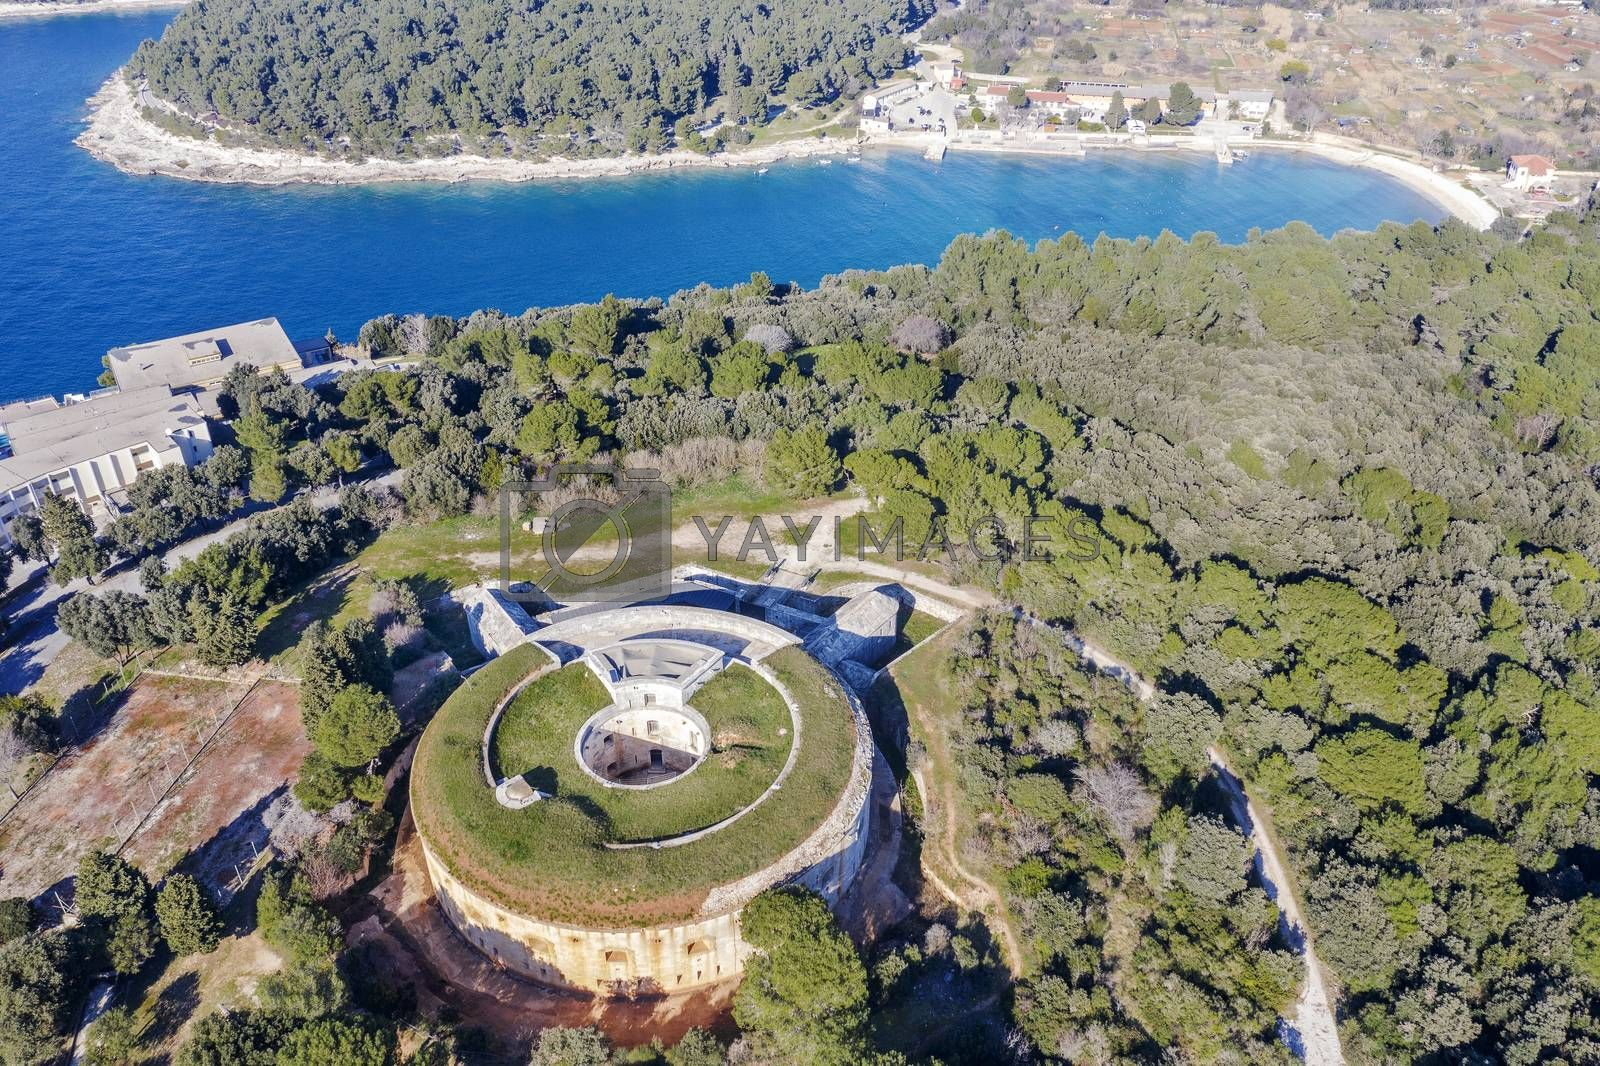 aerial view of Fort Bourguignon, a fortress built during the Austrian Empire, in the background  Valsaline bay, Pula, Istria, Croatia